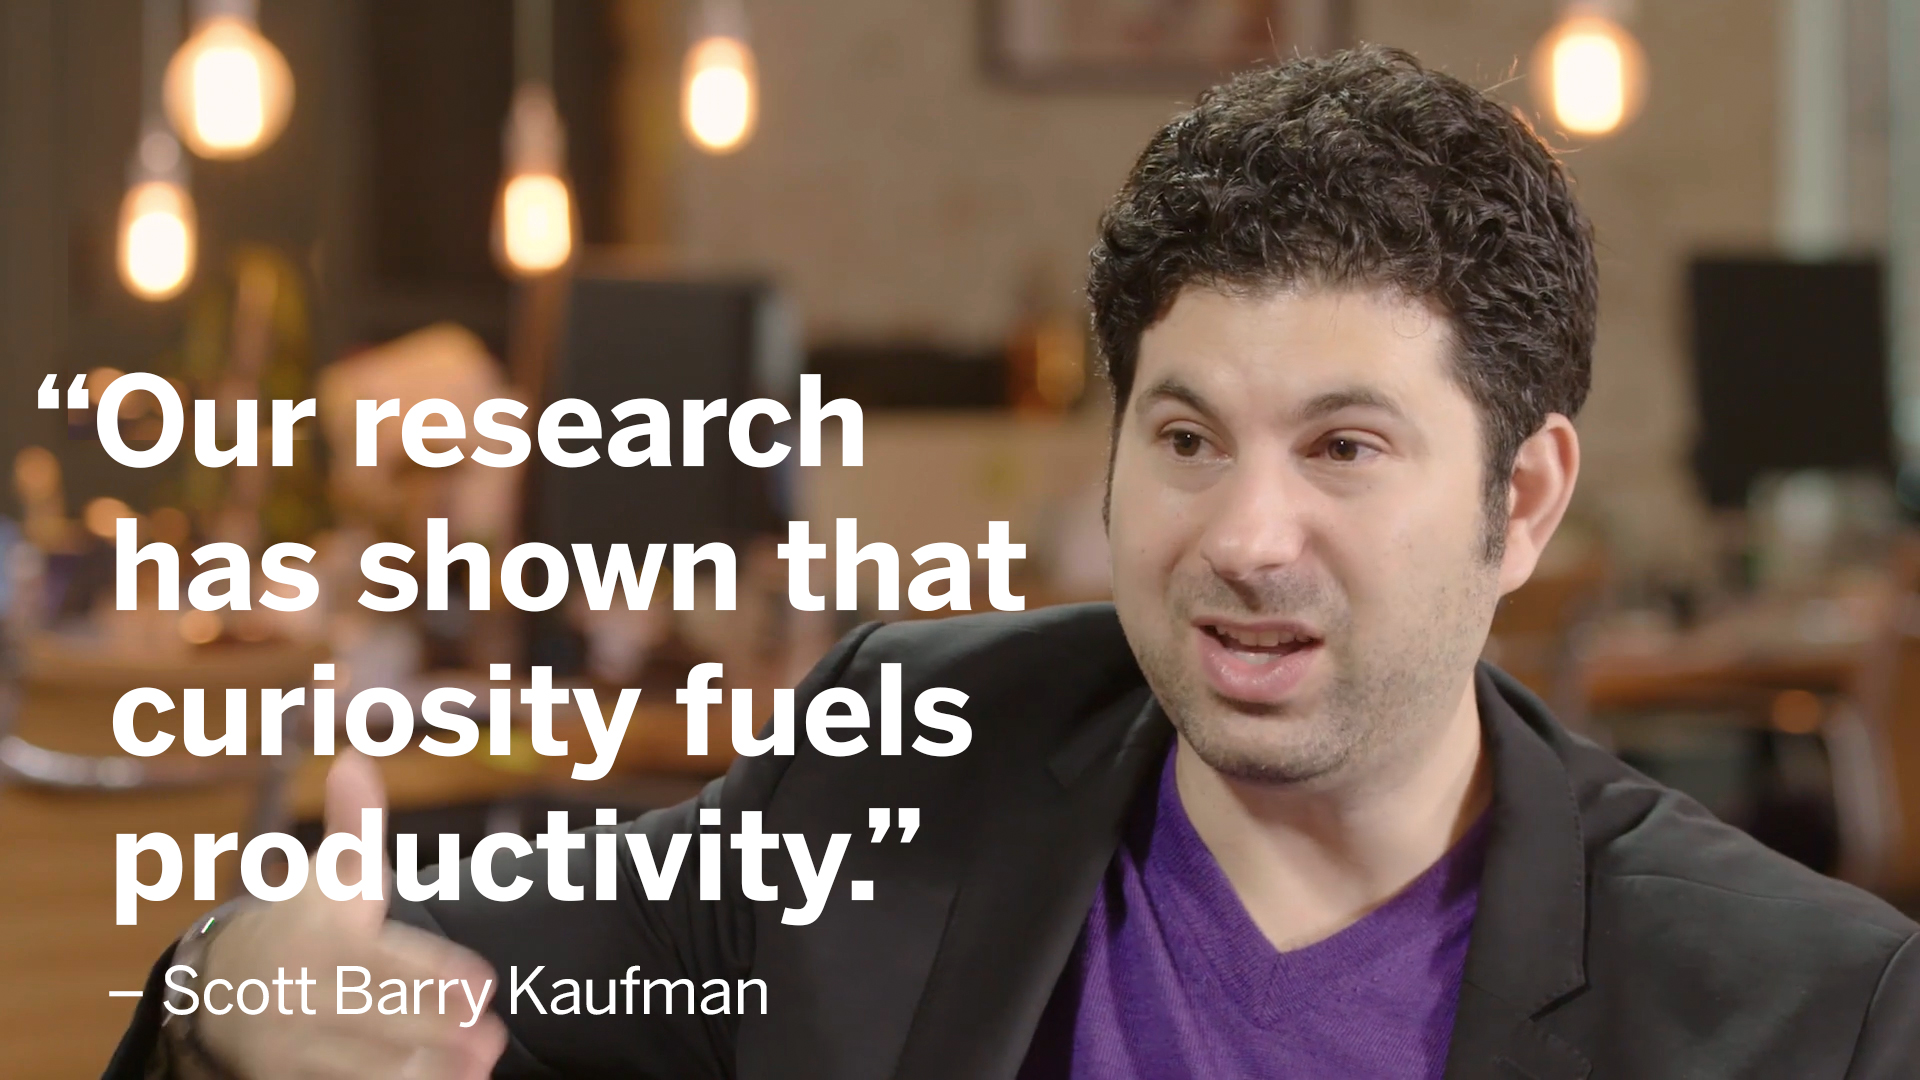 Scott Barry Kaufman, scientific director, Imagination Institute